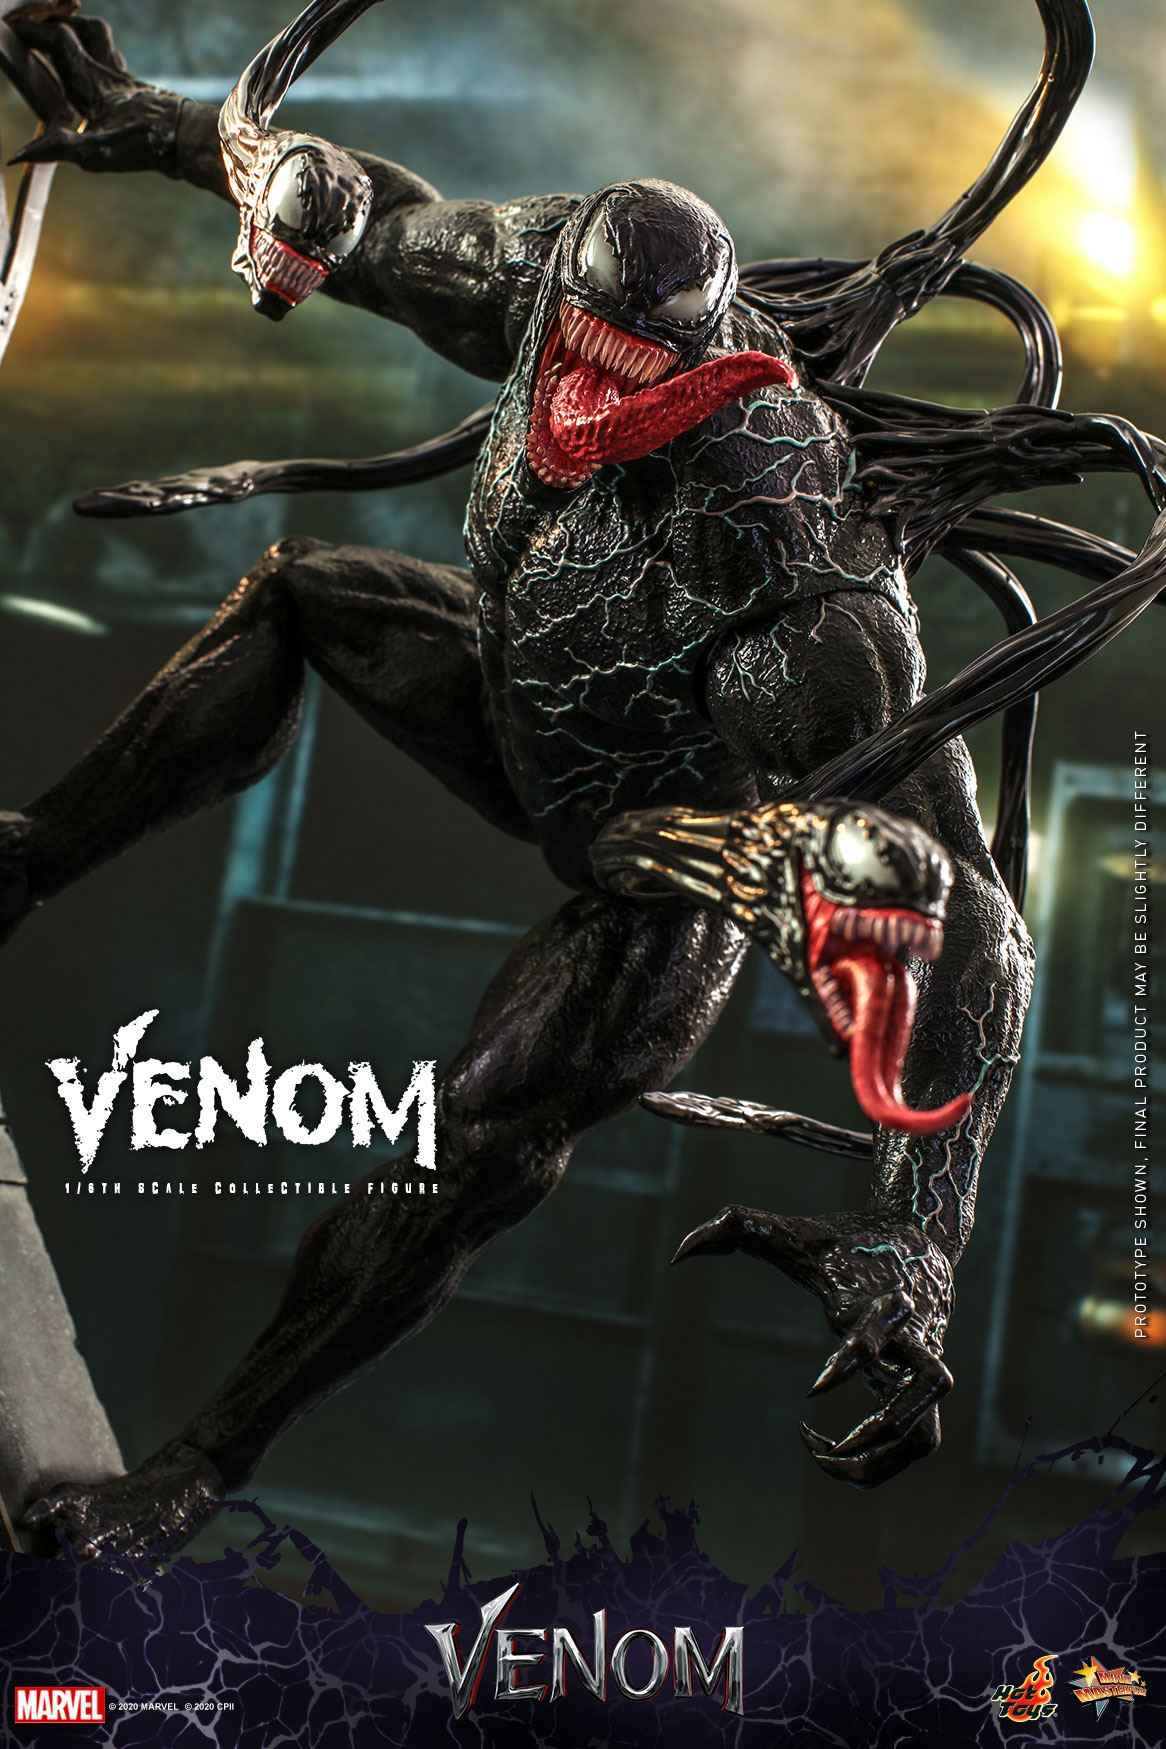 Pre-Order Hot Toys Marvel Venom Movie Sixth Scale Figure